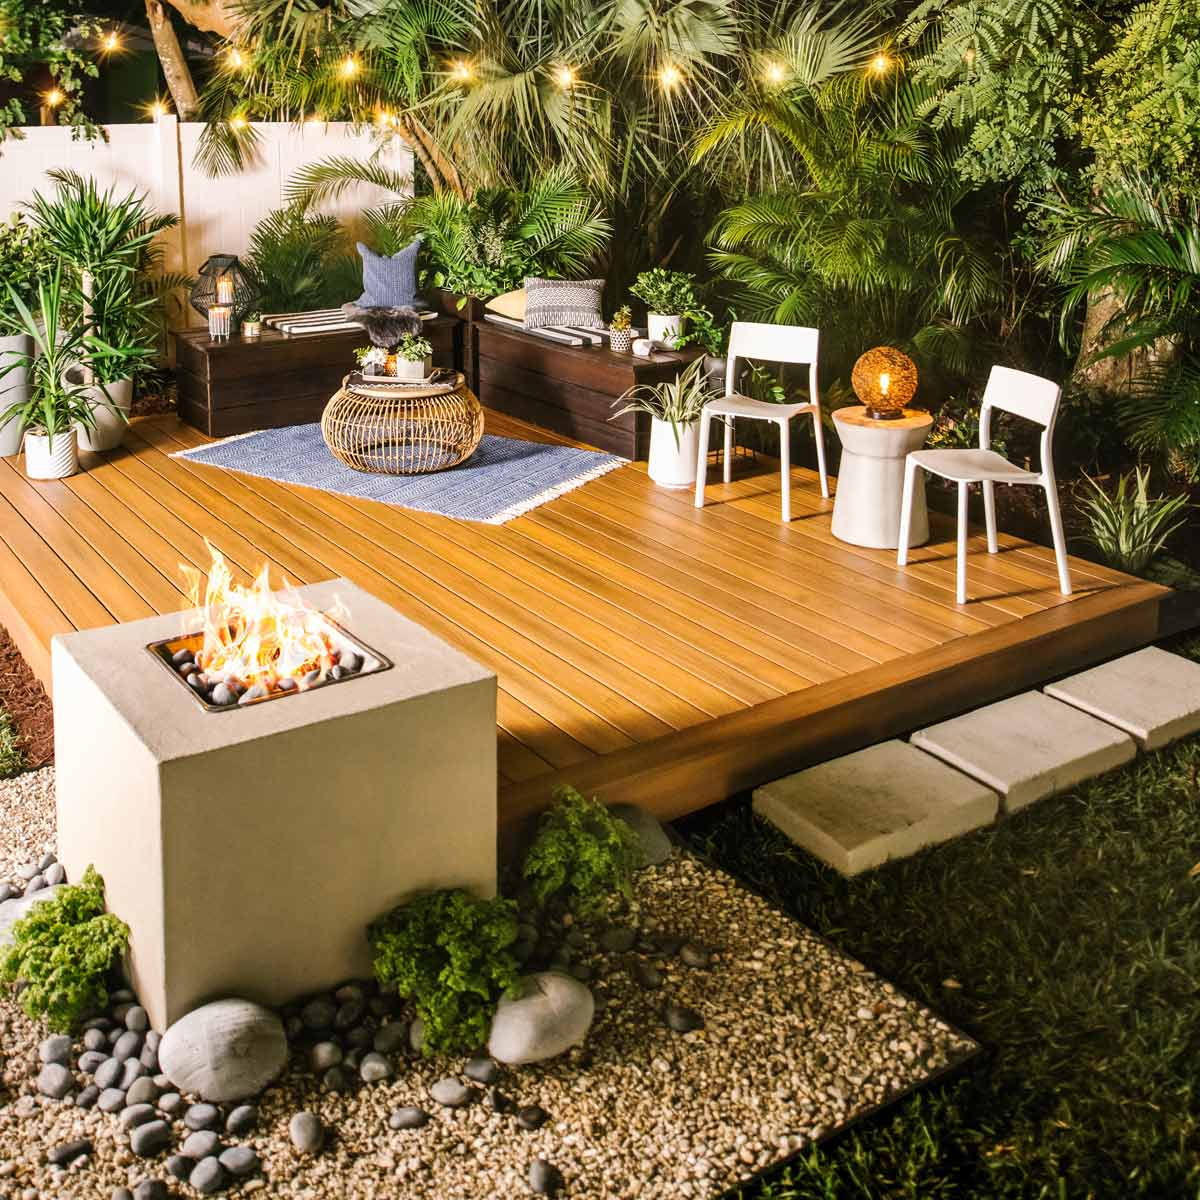 50 Brilliant Ways To Spruce Up Your Backyard This Summer Family throughout 12 Awesome Designs of How to Upgrade Landscaping Your Backyard